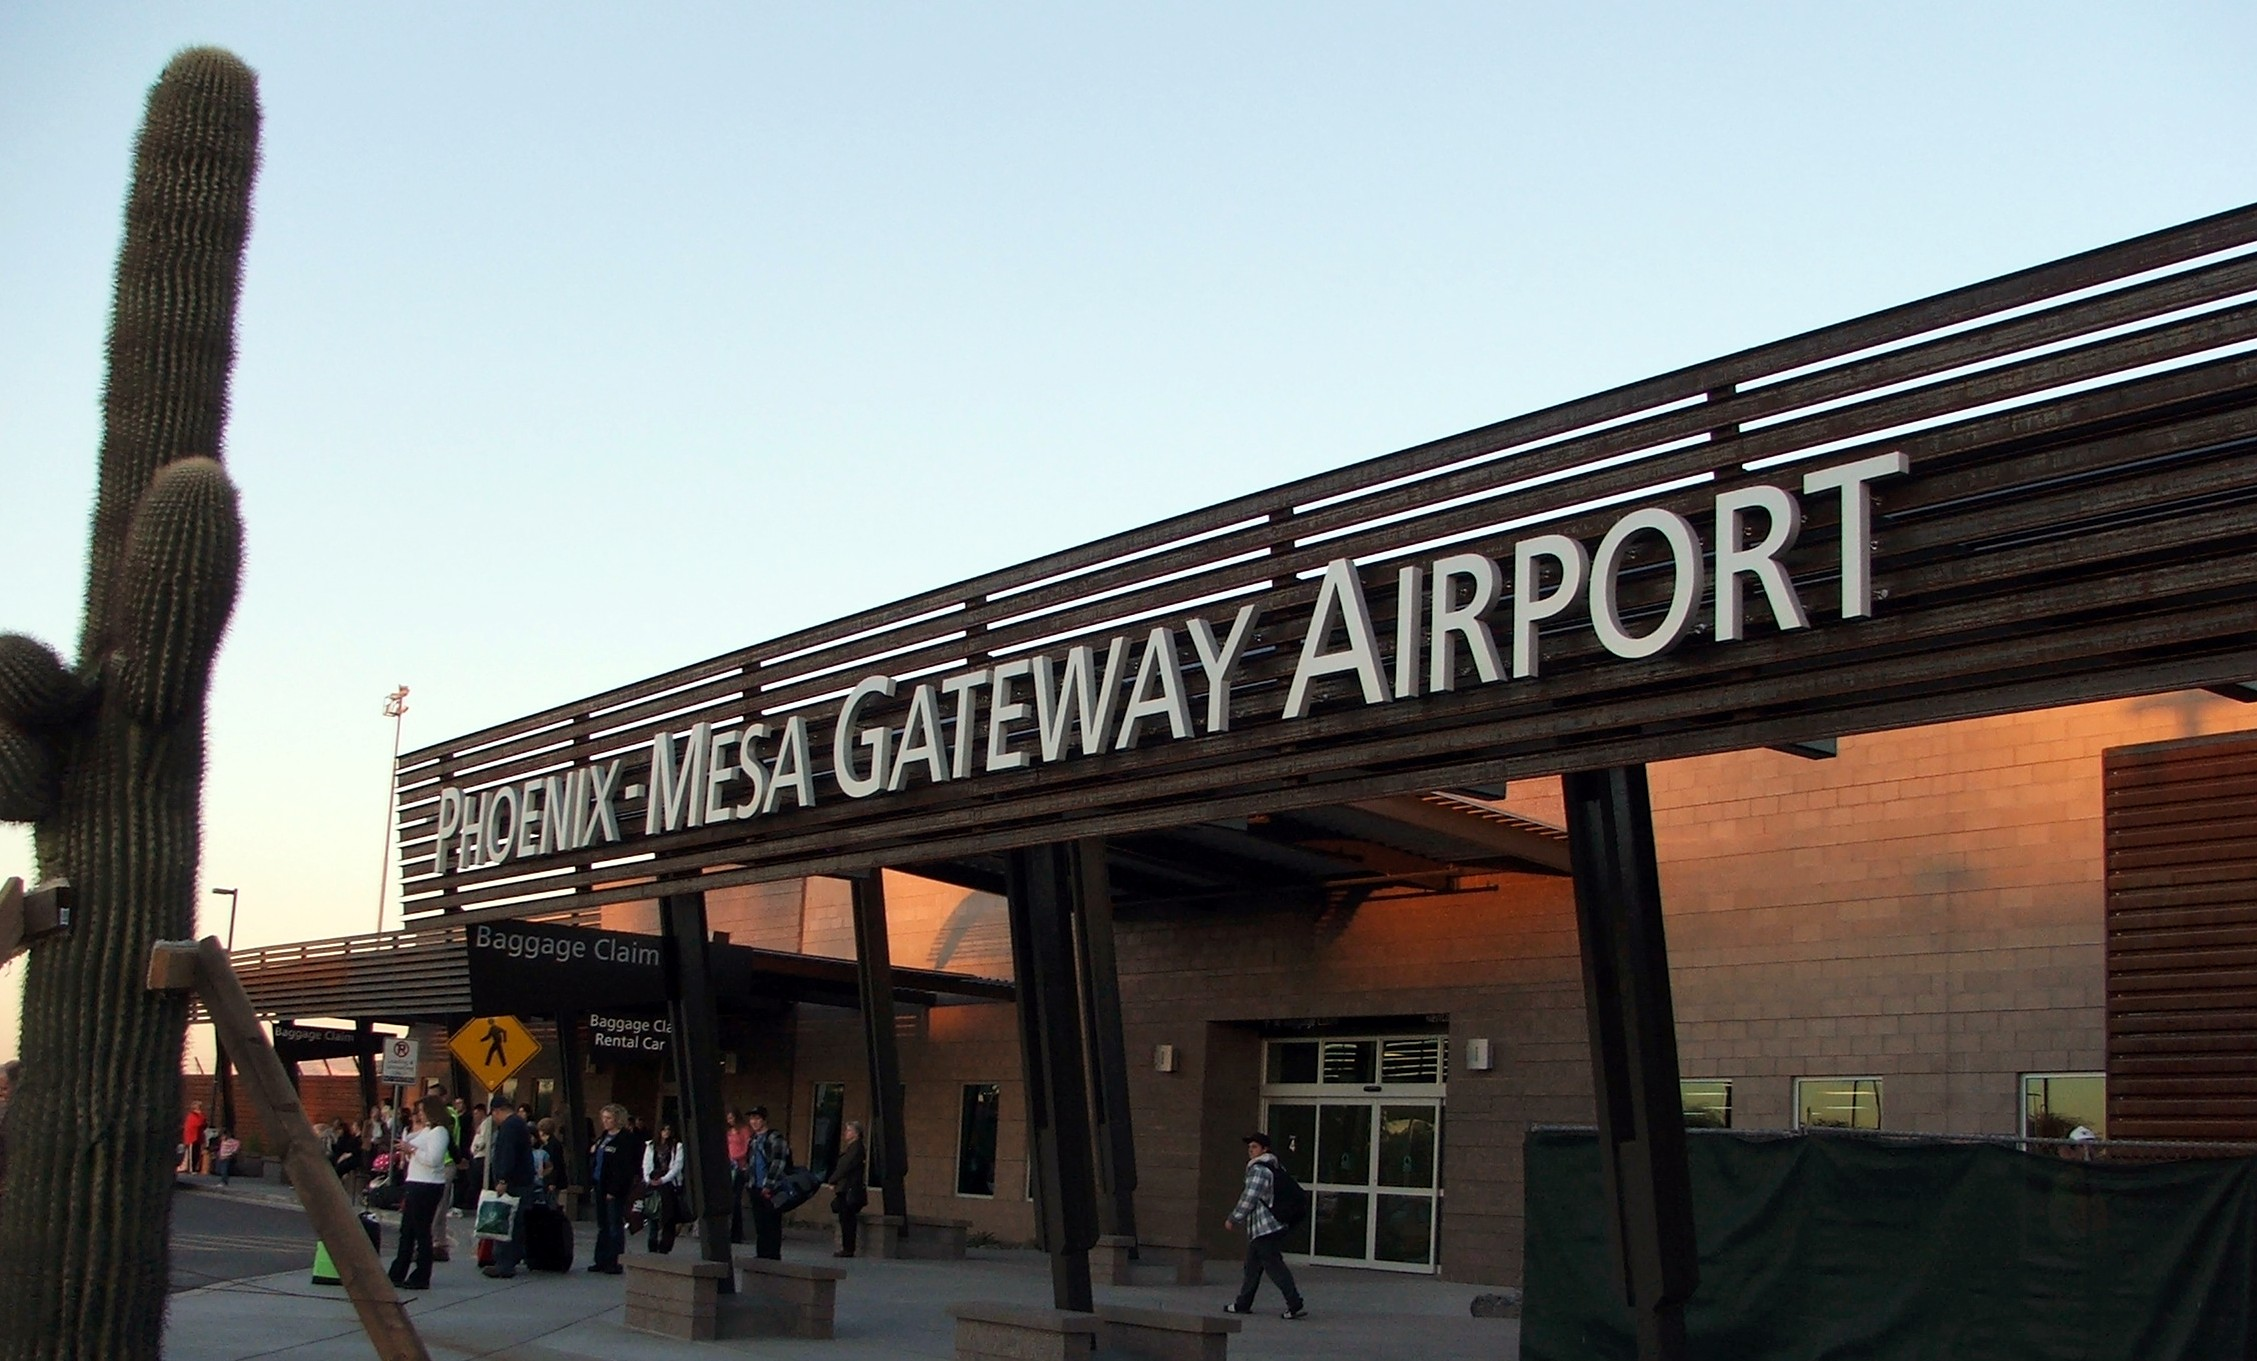 Phx-Mesa-Gateway-Terminal-Sign